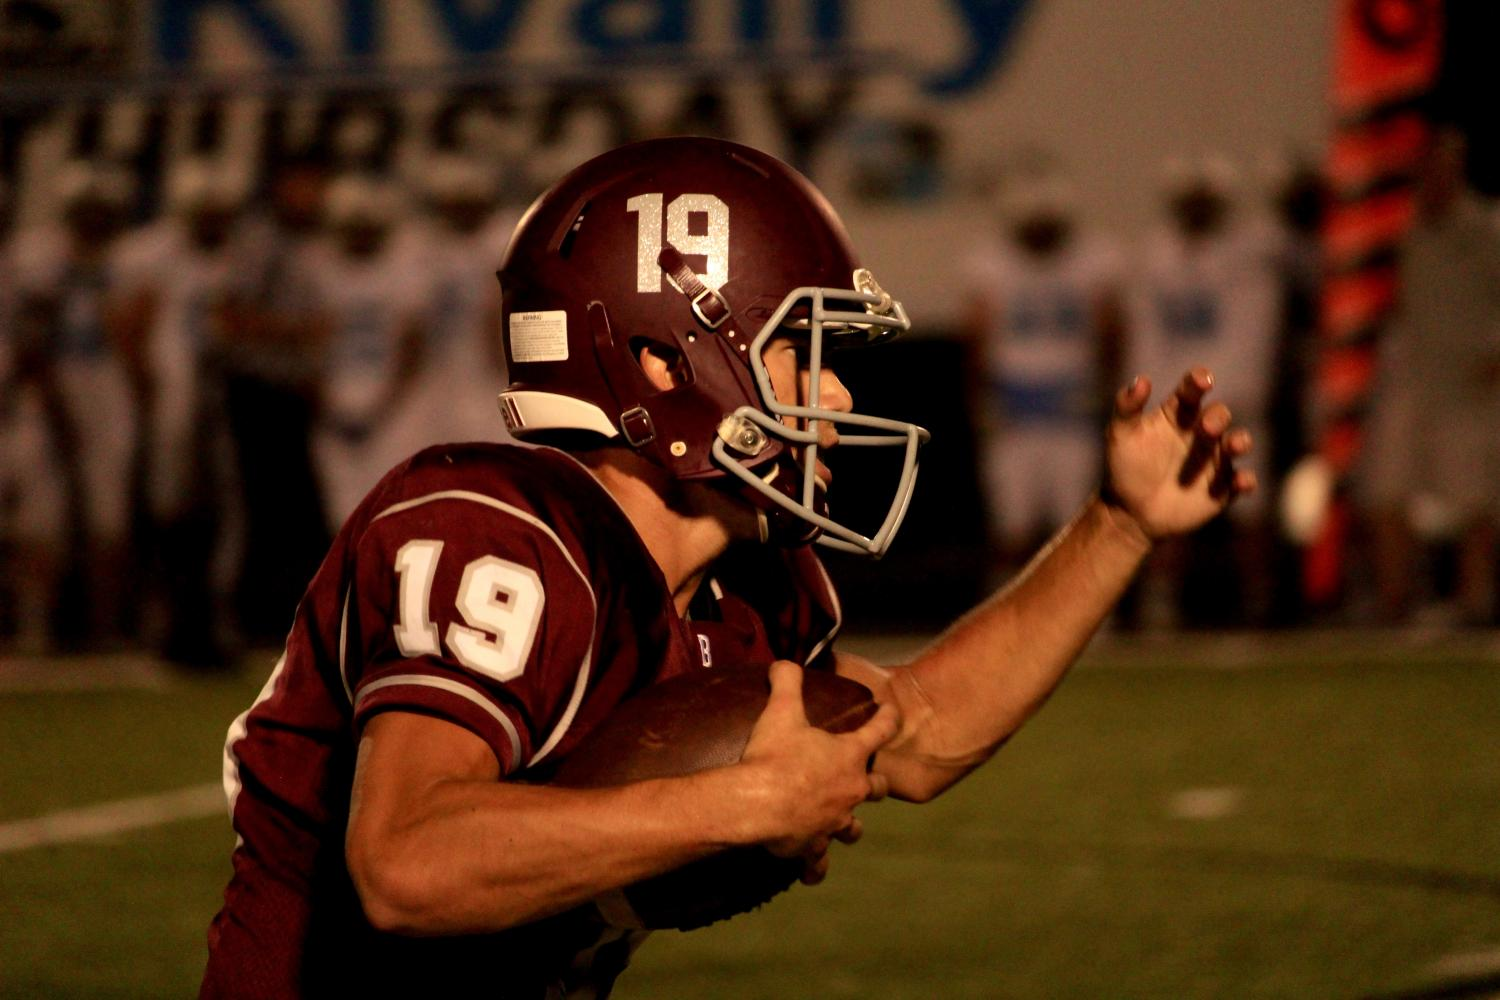 Dawson+Houser+started+his+junior+year+as+Bearden%27s+starting+quarterback.+He+enters+his+senior+season+as+one+of+the+team%27s+best+receivers+and+one+of+its+most+important+leaders.